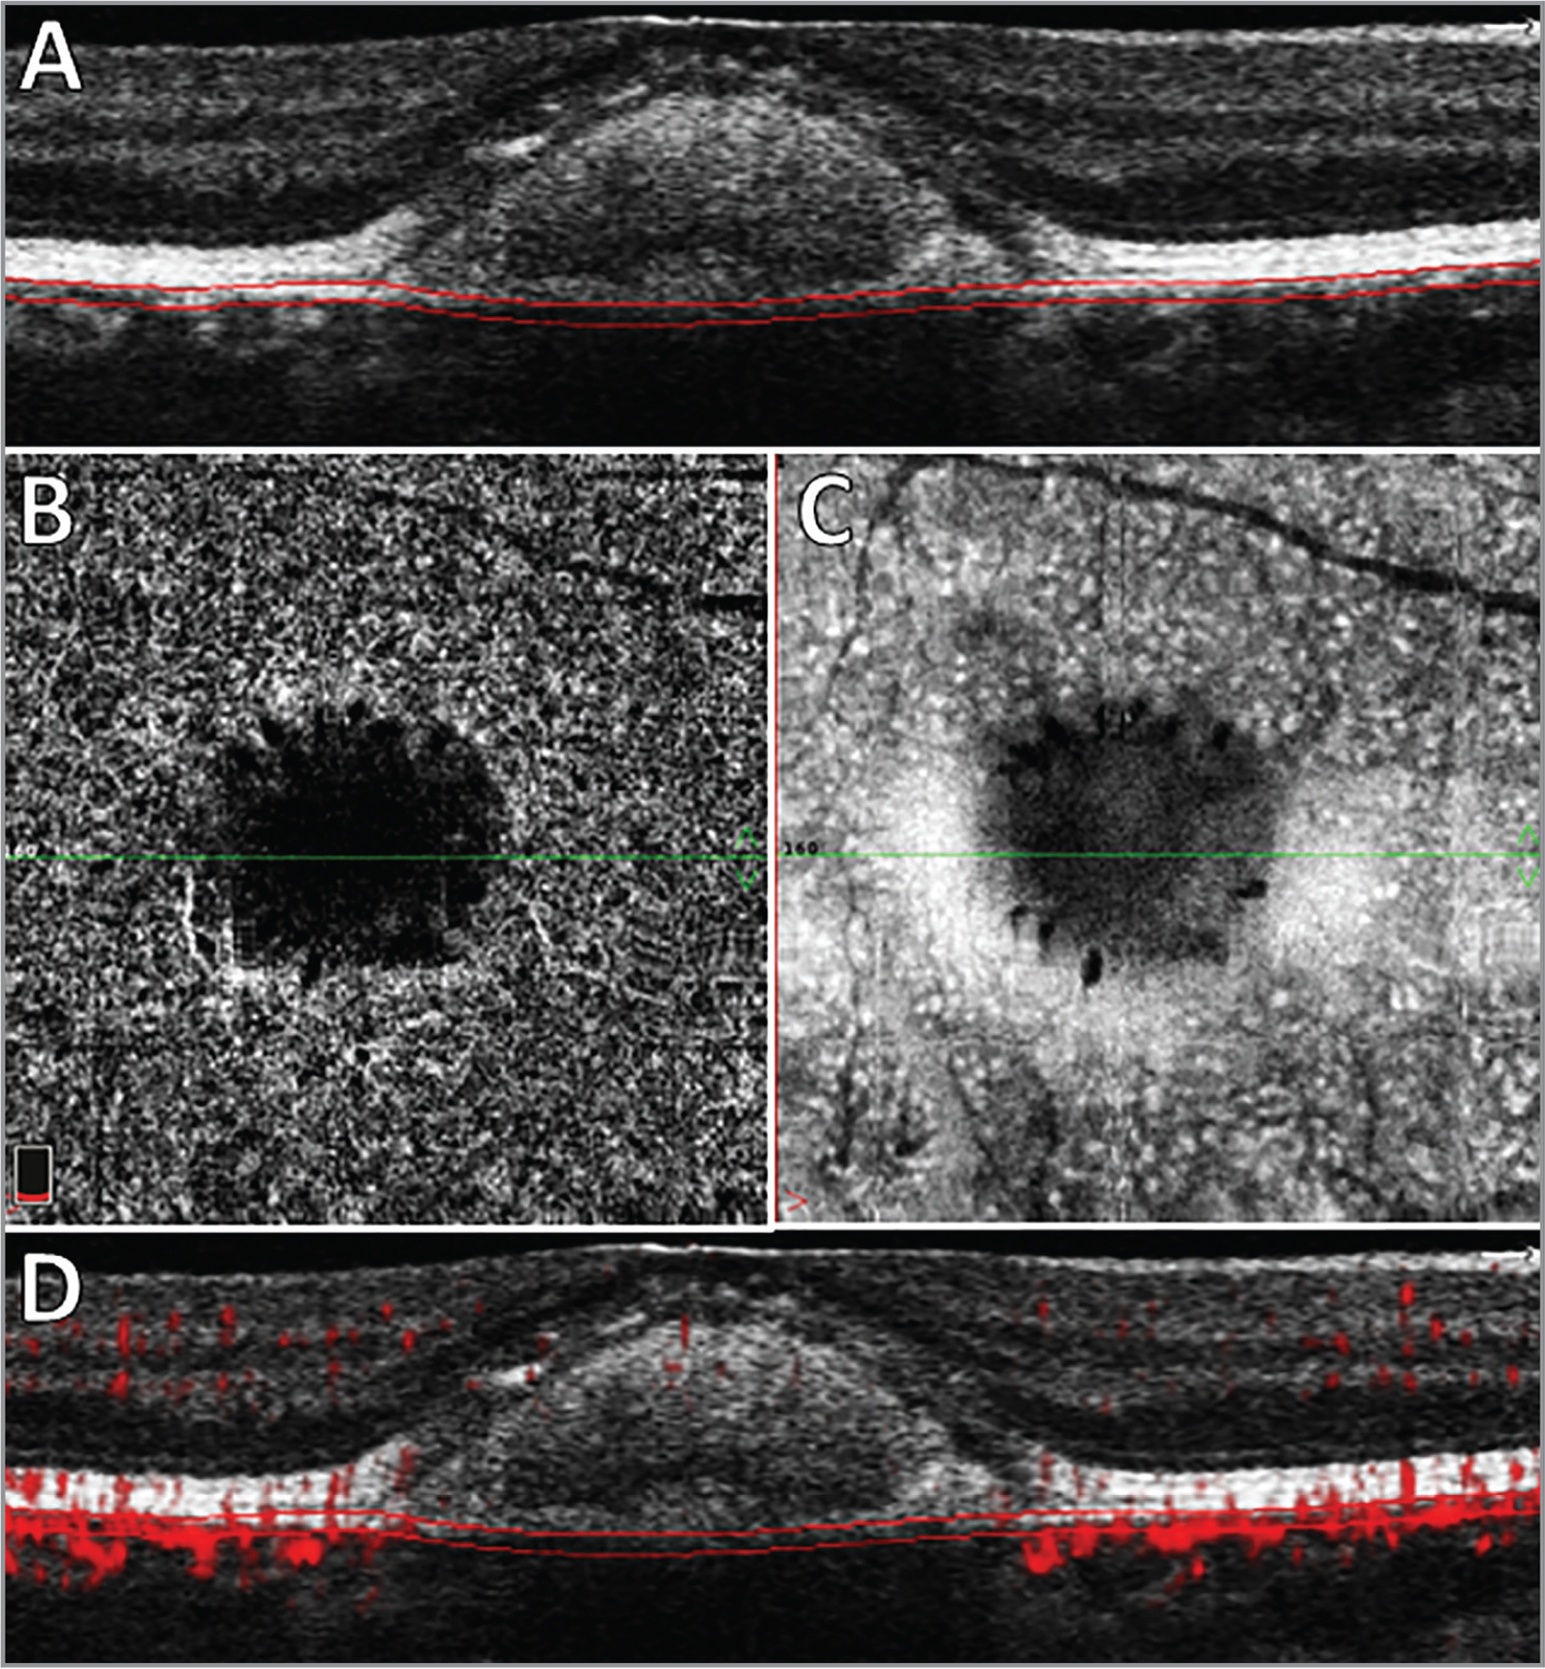 (A) Structural optical coherence tomography (OCT) B-scan shows submacular hyperreflective material between the photoreceptor and retinal pigment epithelium. The parallel red lines indicate the automatic segmentation of the choriocapillaris (CC). (B) En face OCTA flow image of the CC showing a dark central area, suggesting hypoperfusion. (C) Structural image of the CC showing a hyporeflective central area, revealing an attenuation of the signal from the CC, probably due to interference by the submacular hyperreflective material. (D) OCT angiography B-scan exhibiting a questionable decrease in the decorrelation signal from the CC.